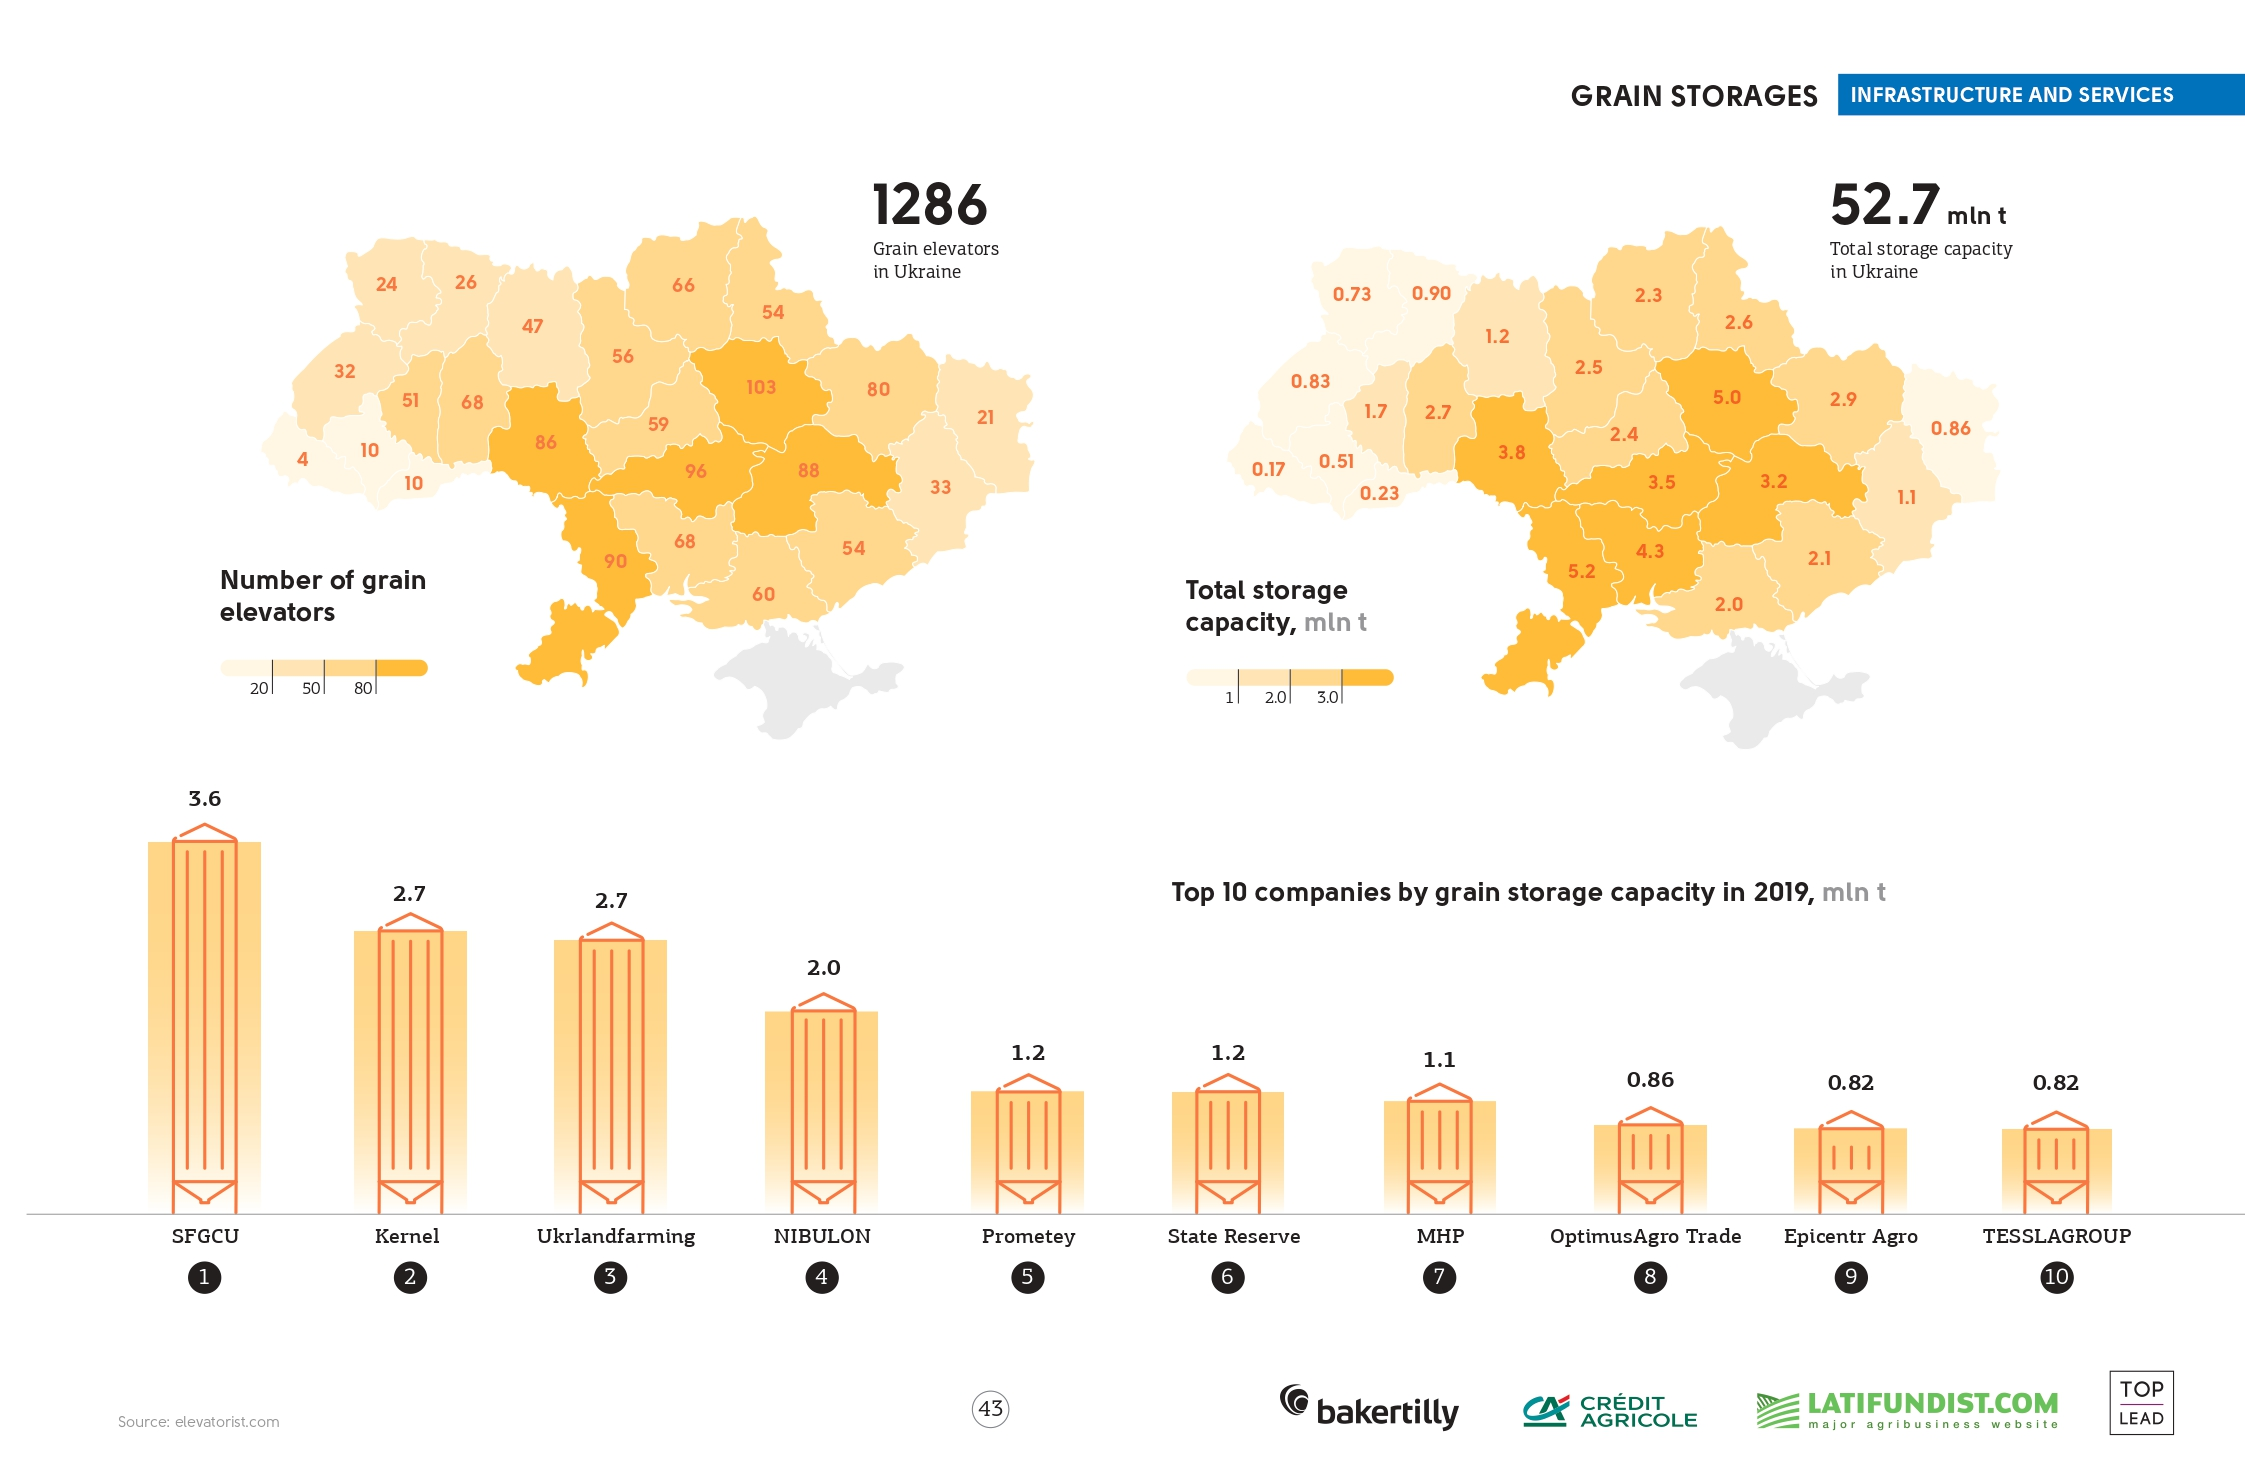 Grain storages in Ukraine (click for full resolution)